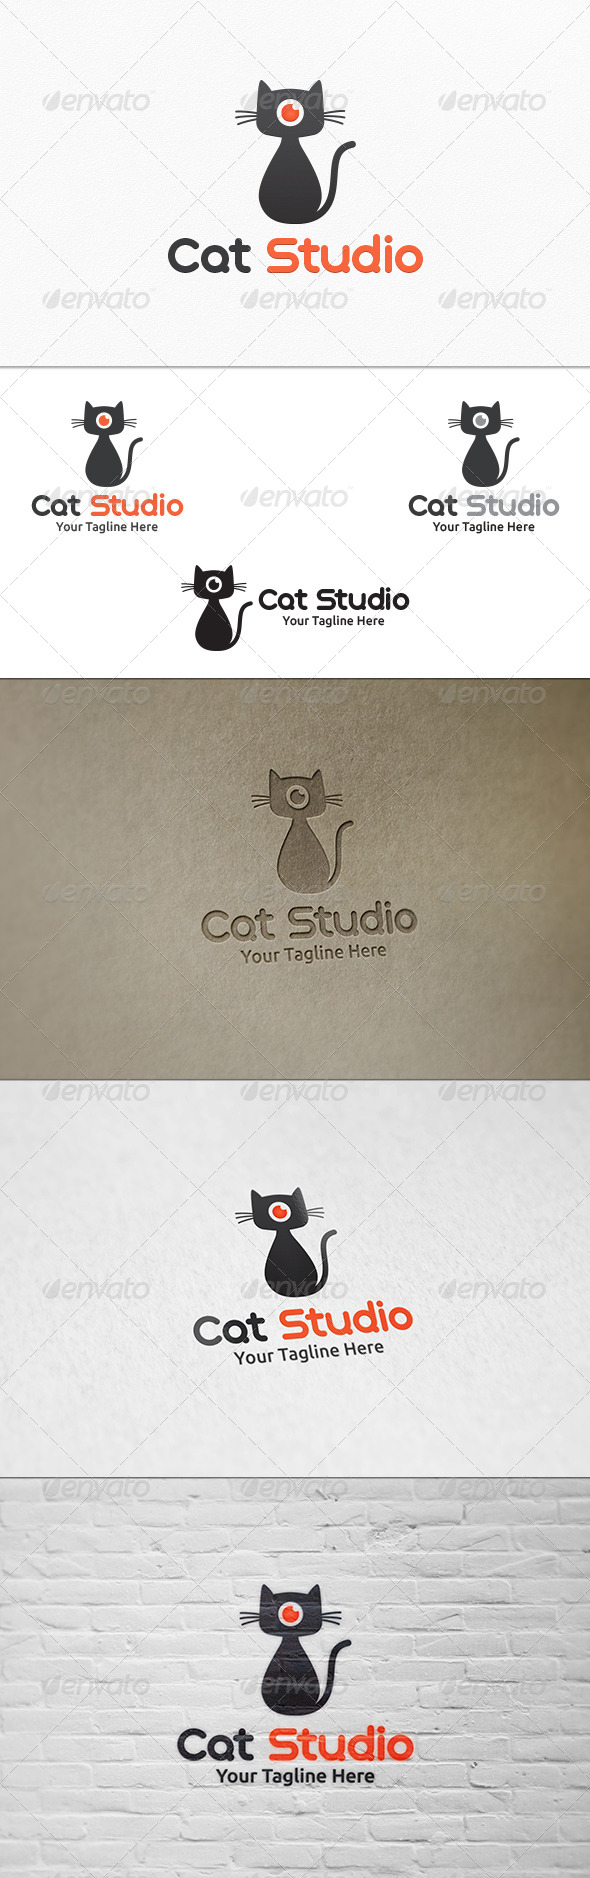 GraphicRiver Cat Studio Logo Template 8079397